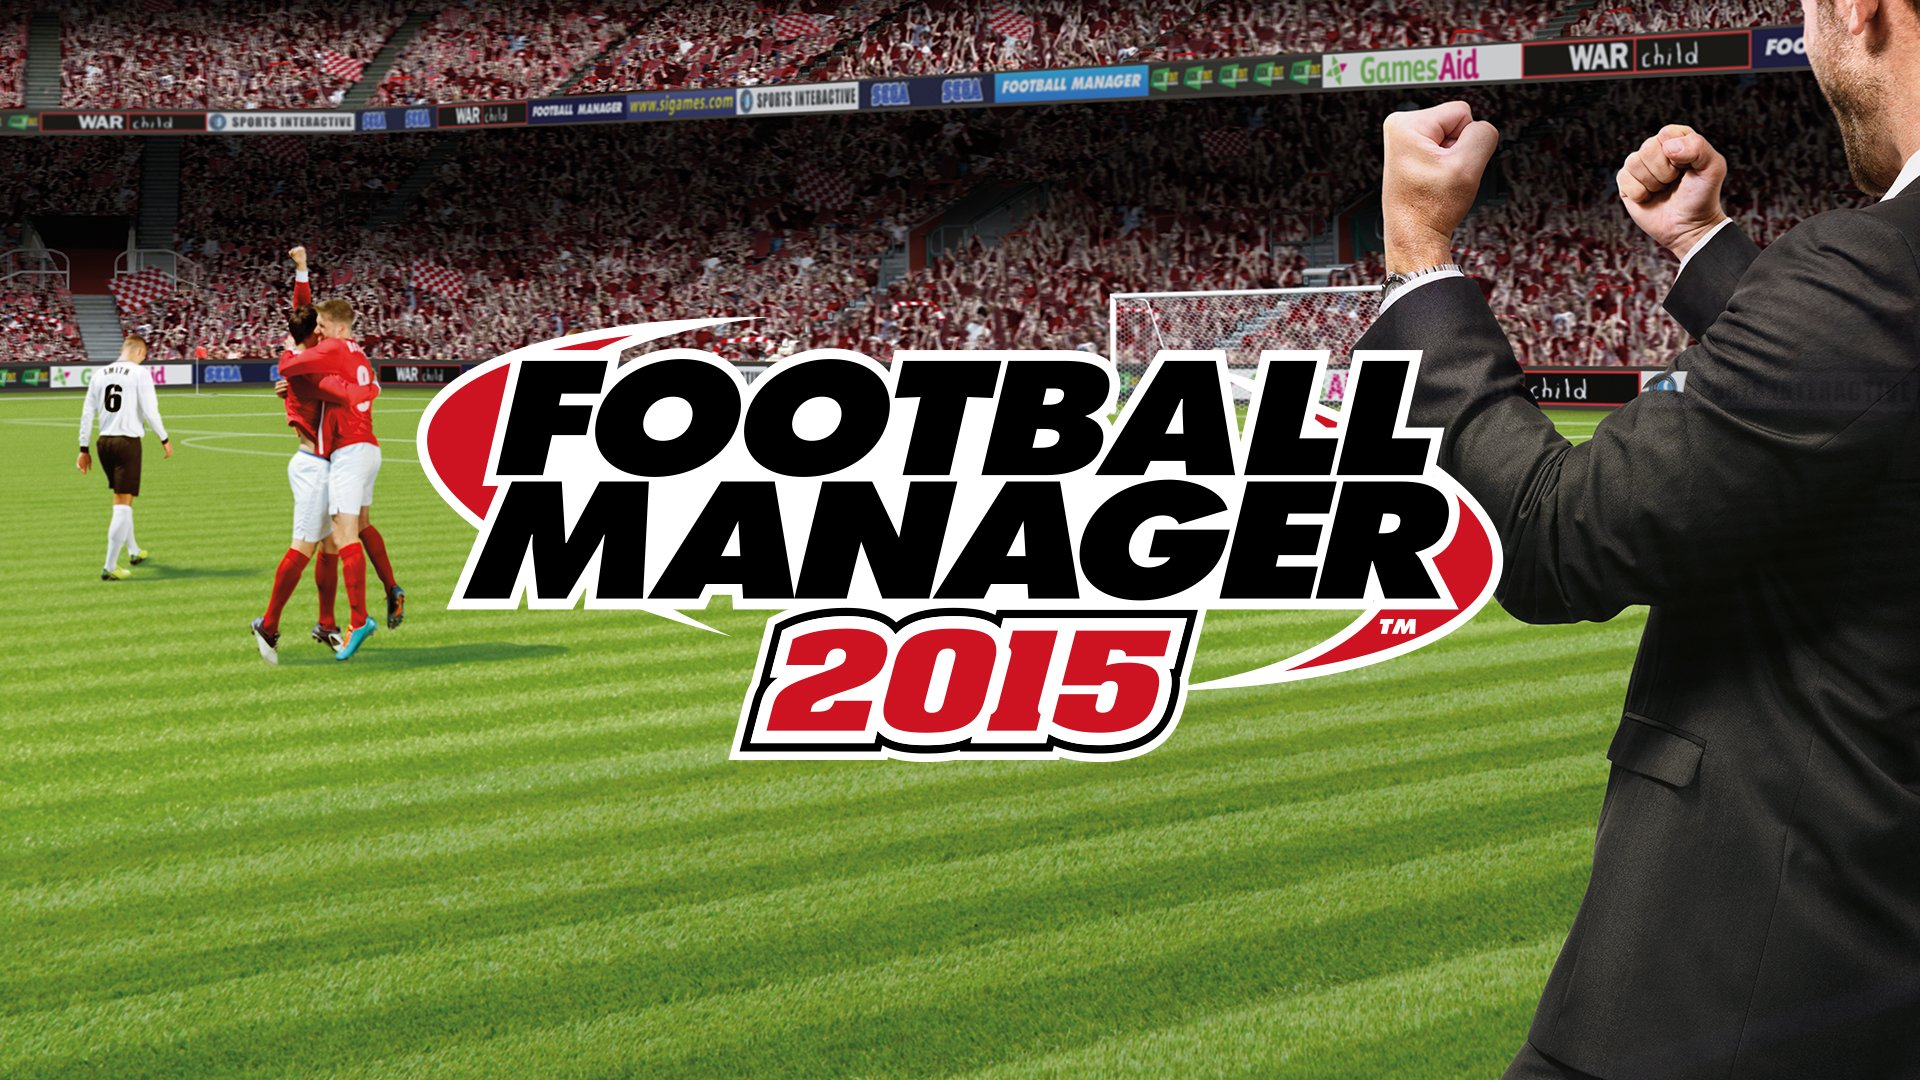 Conversamos com o diretor do Football Manager e falamos